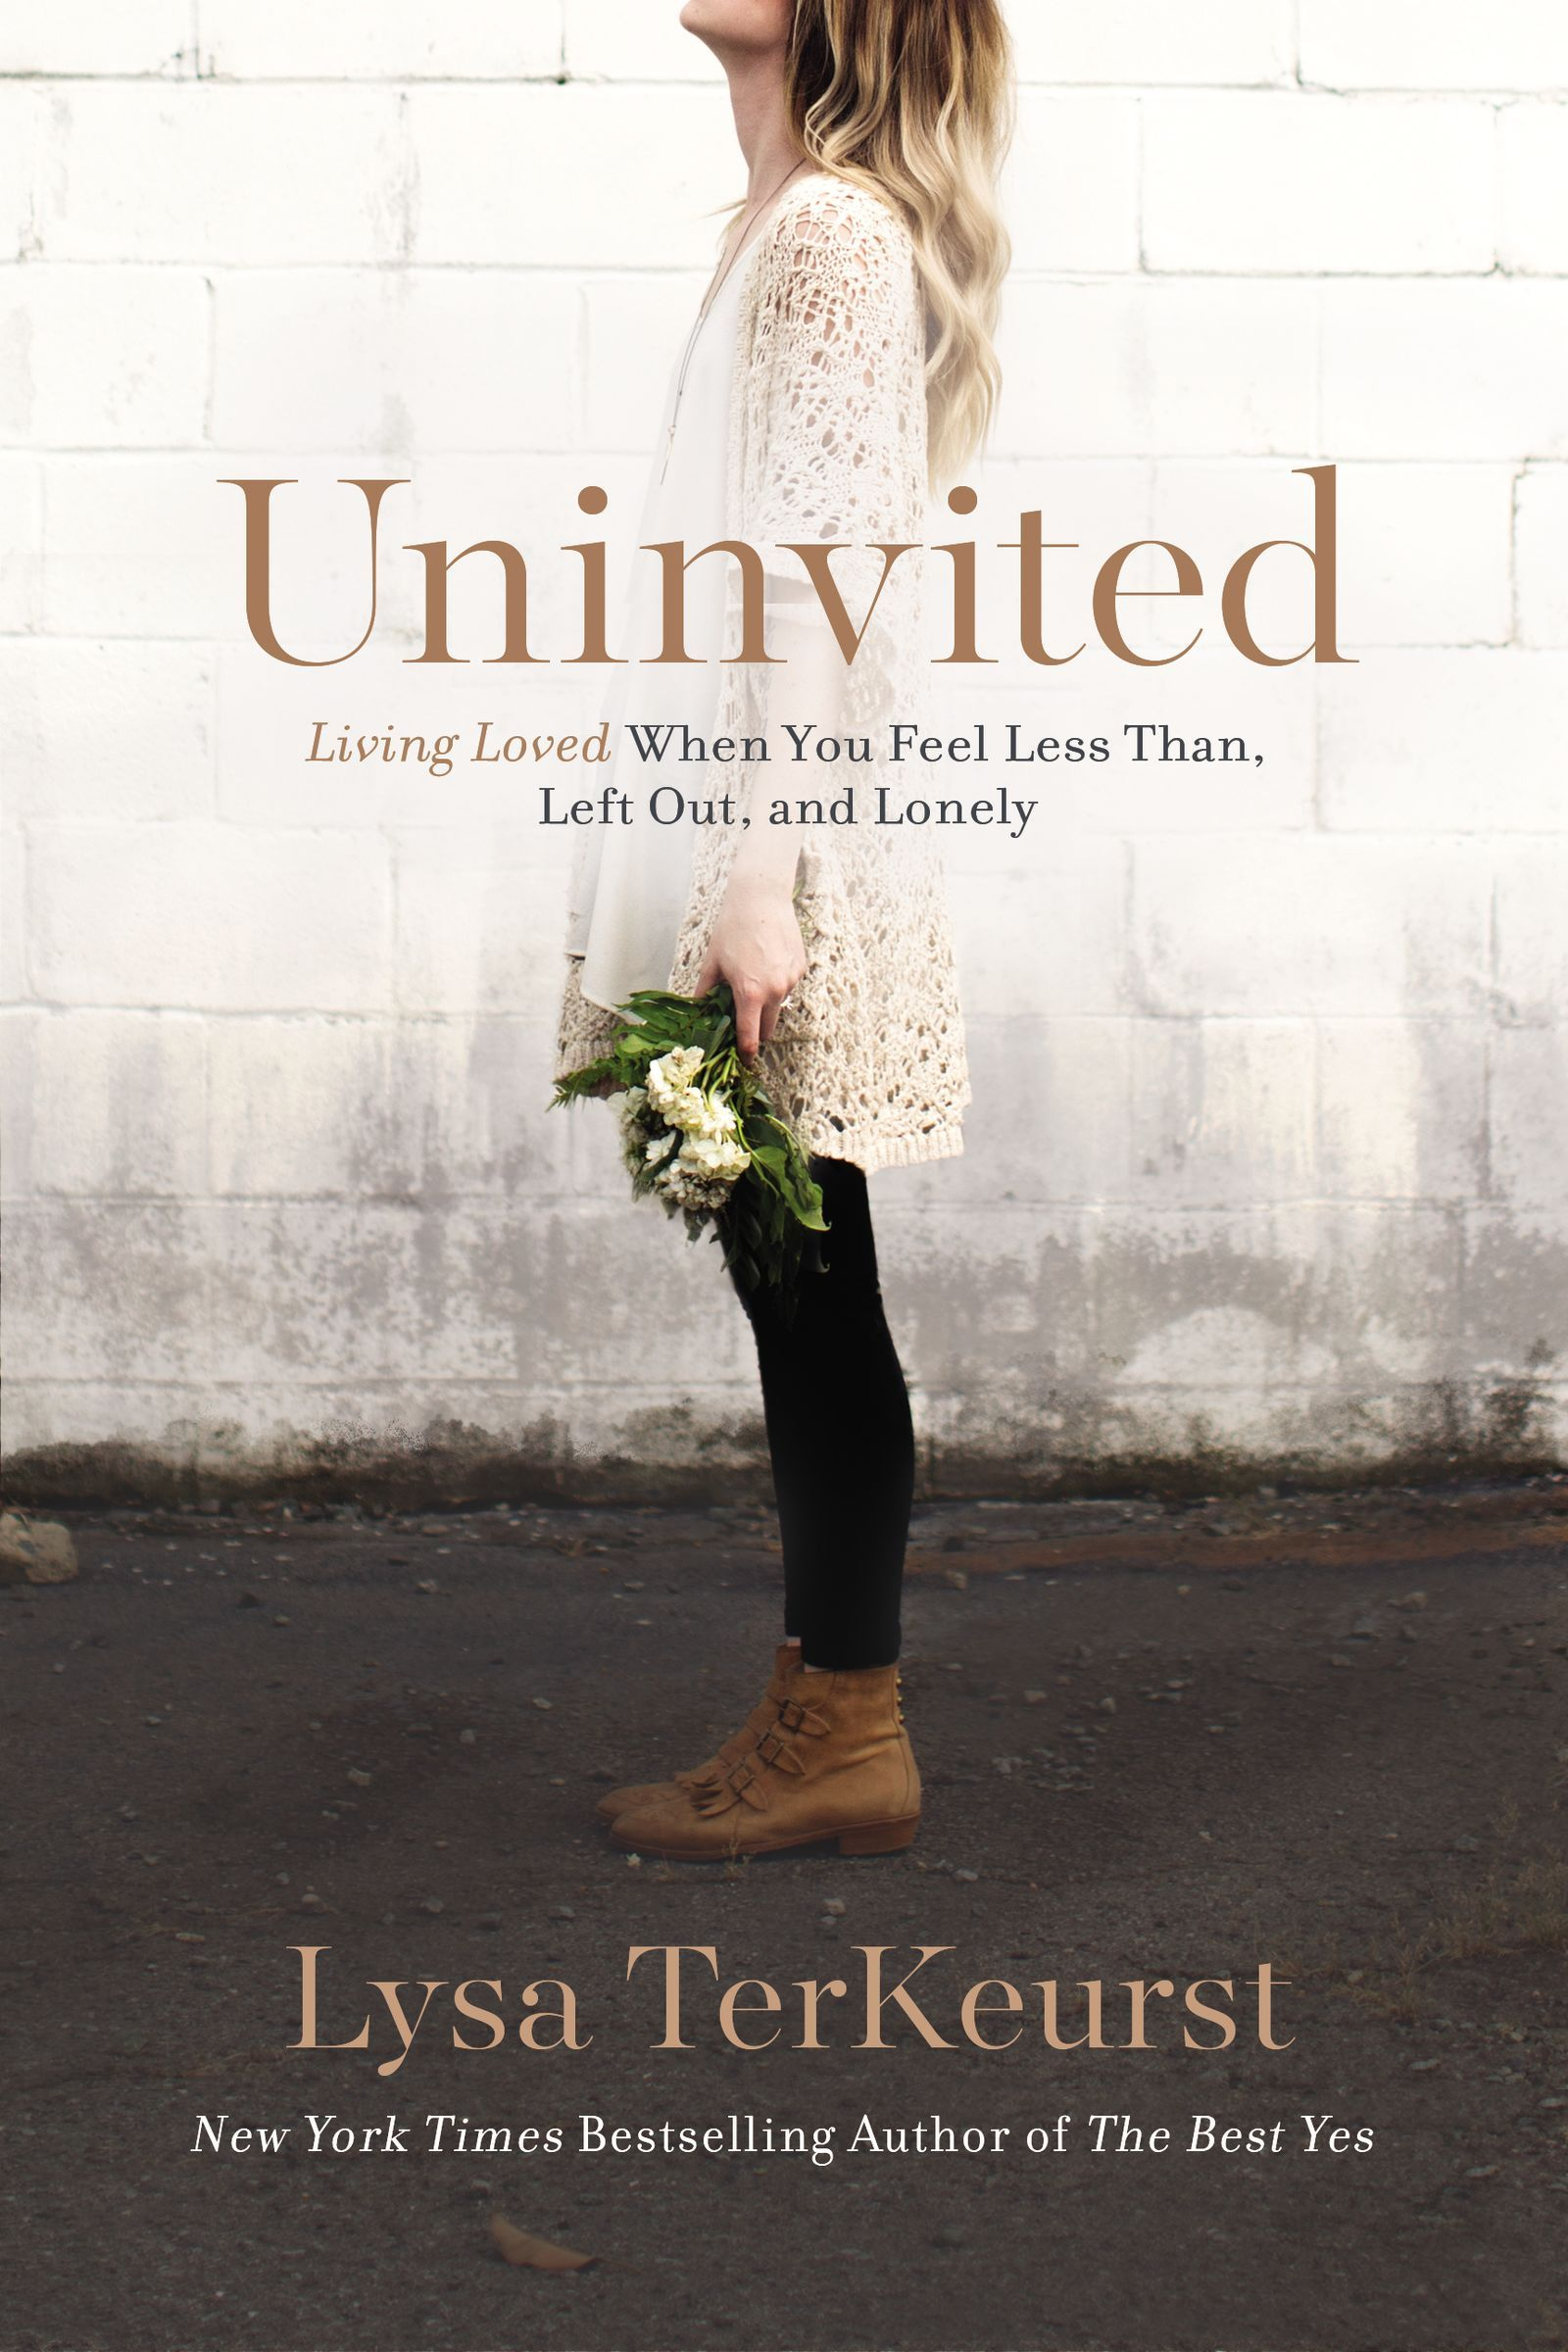 Uninvited-Living-Loved-When-You-Feel-Less-Than-Left-Out-and-Lonely